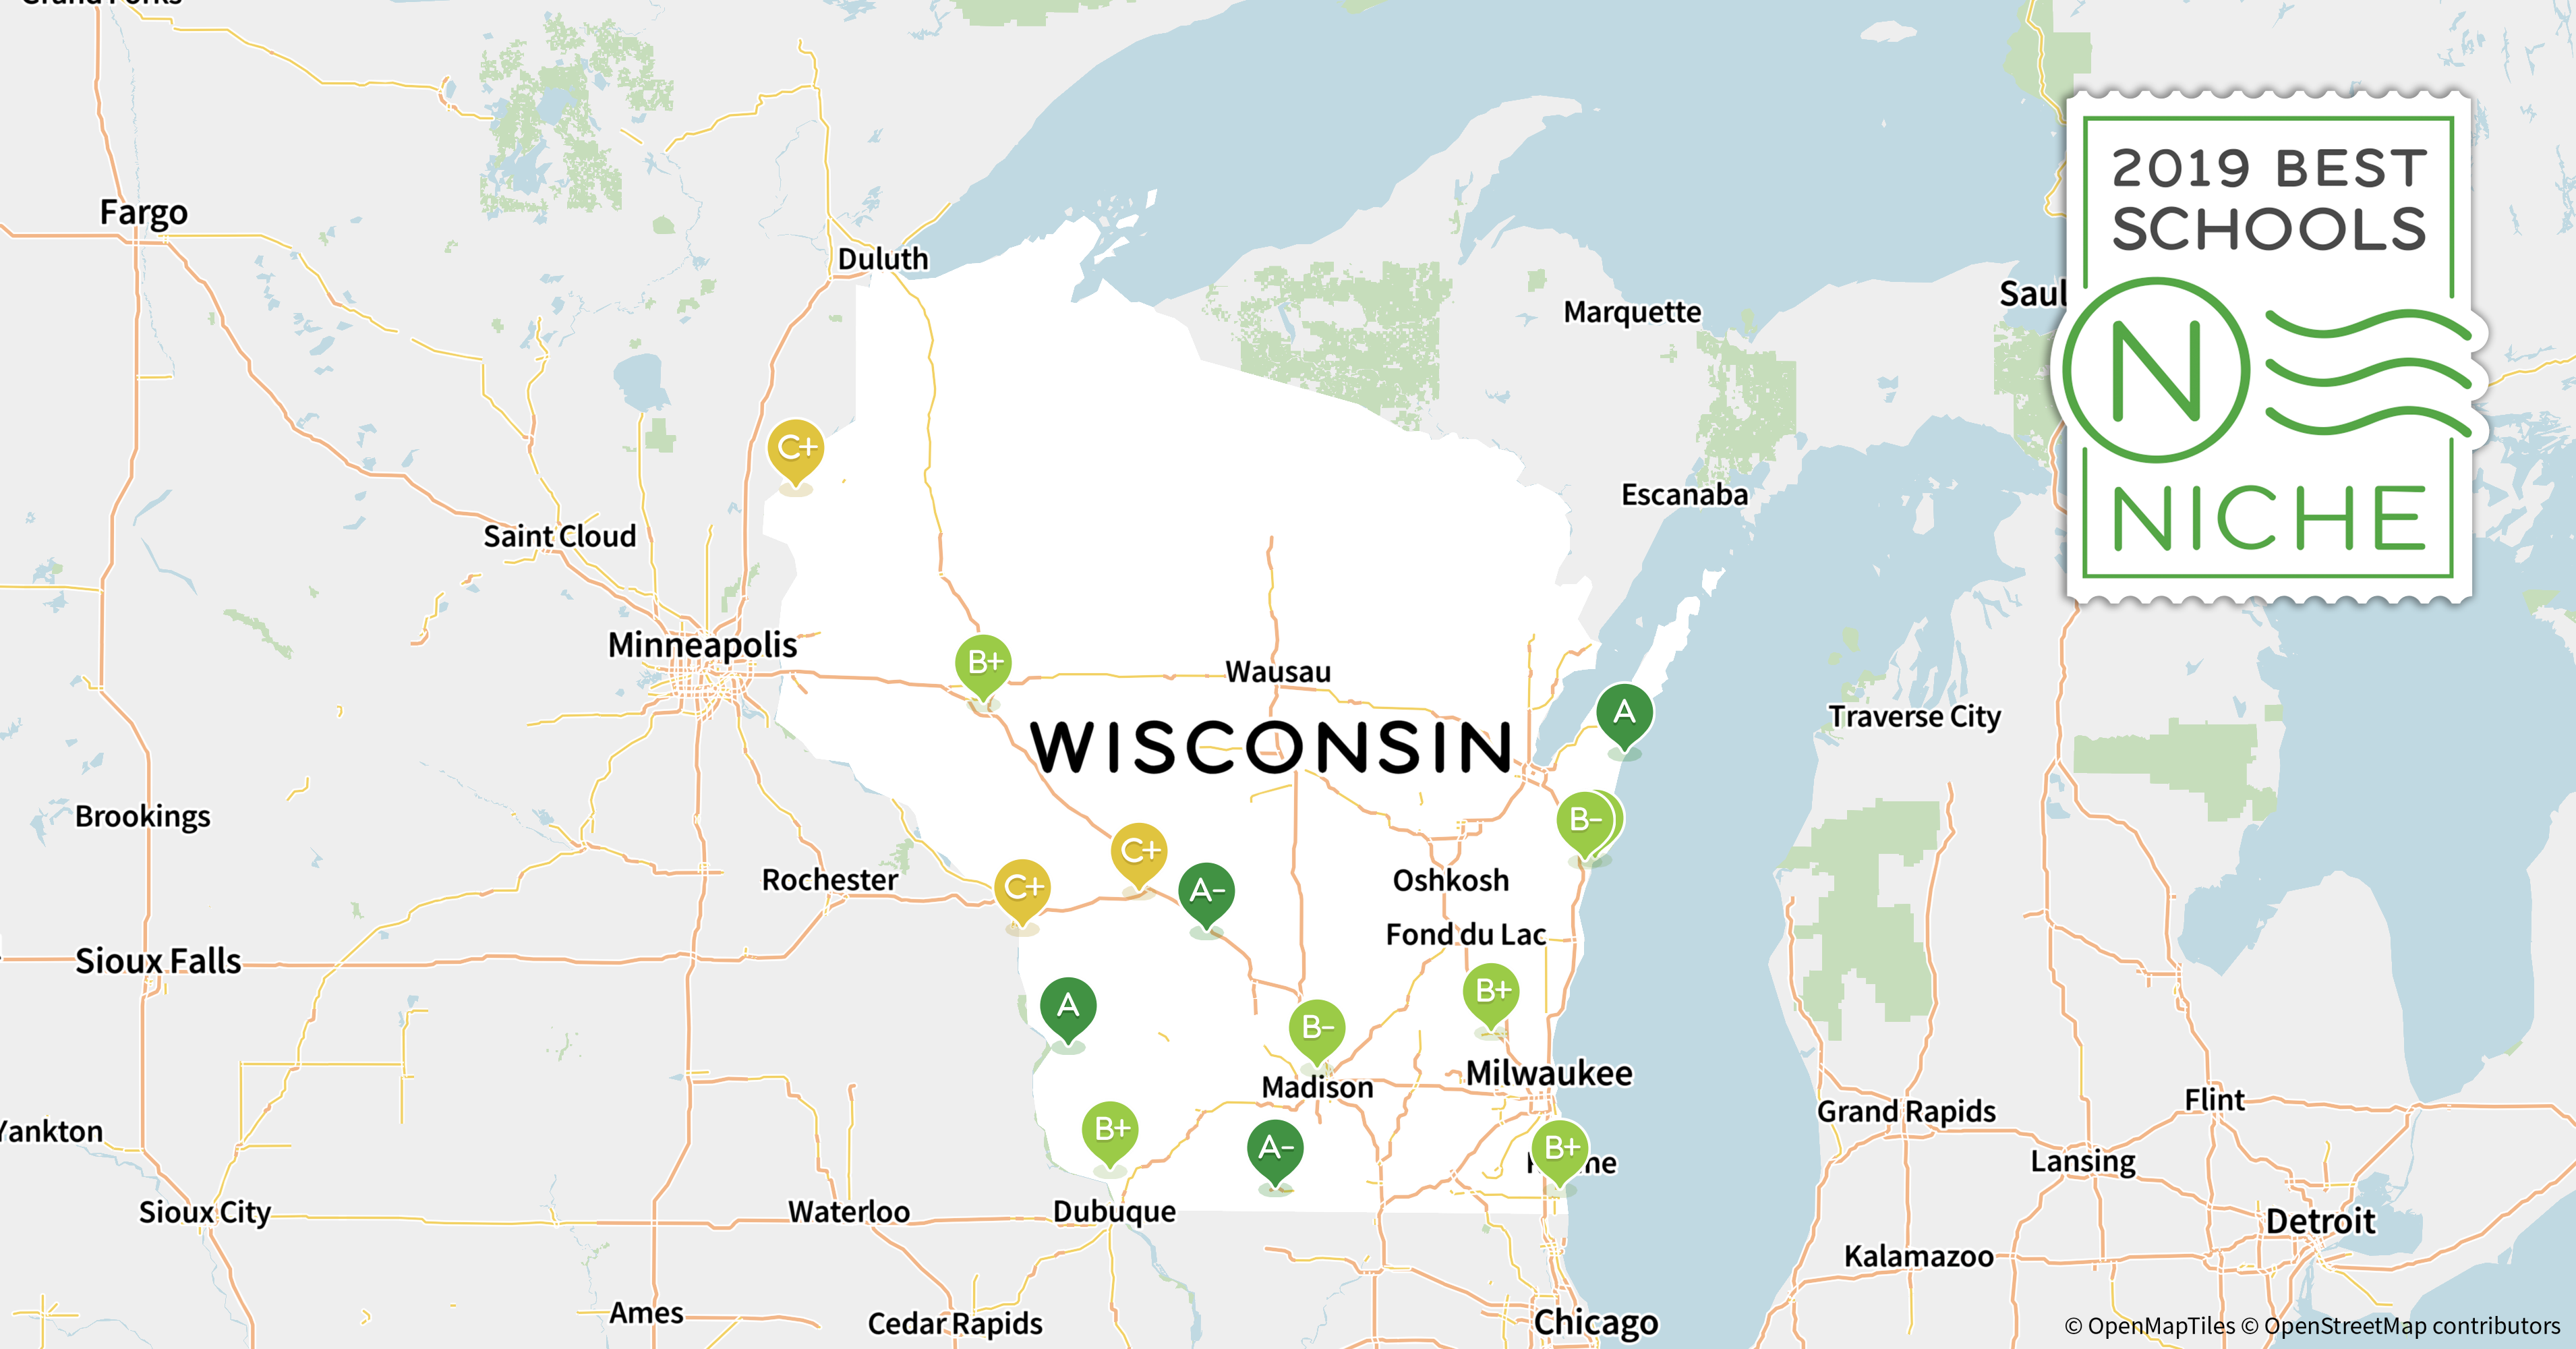 2019 Best School Districts in Wisconsin - Niche